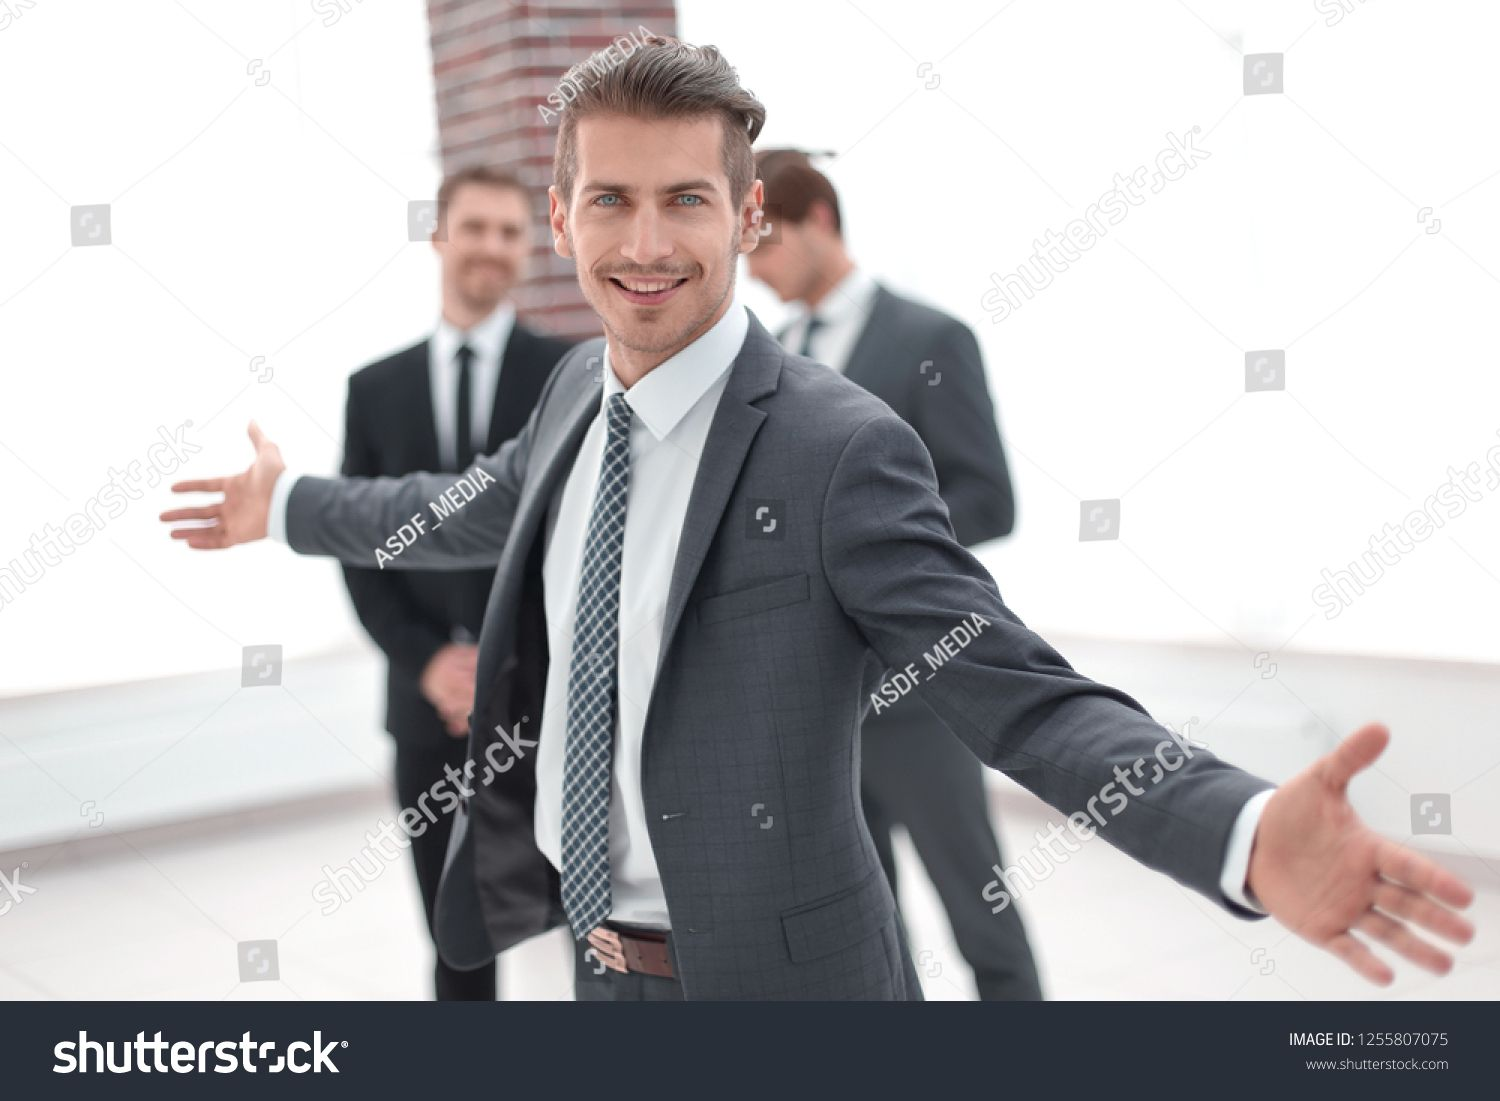 Successful Business Man With Open Armsbusiness Successful Man Arms